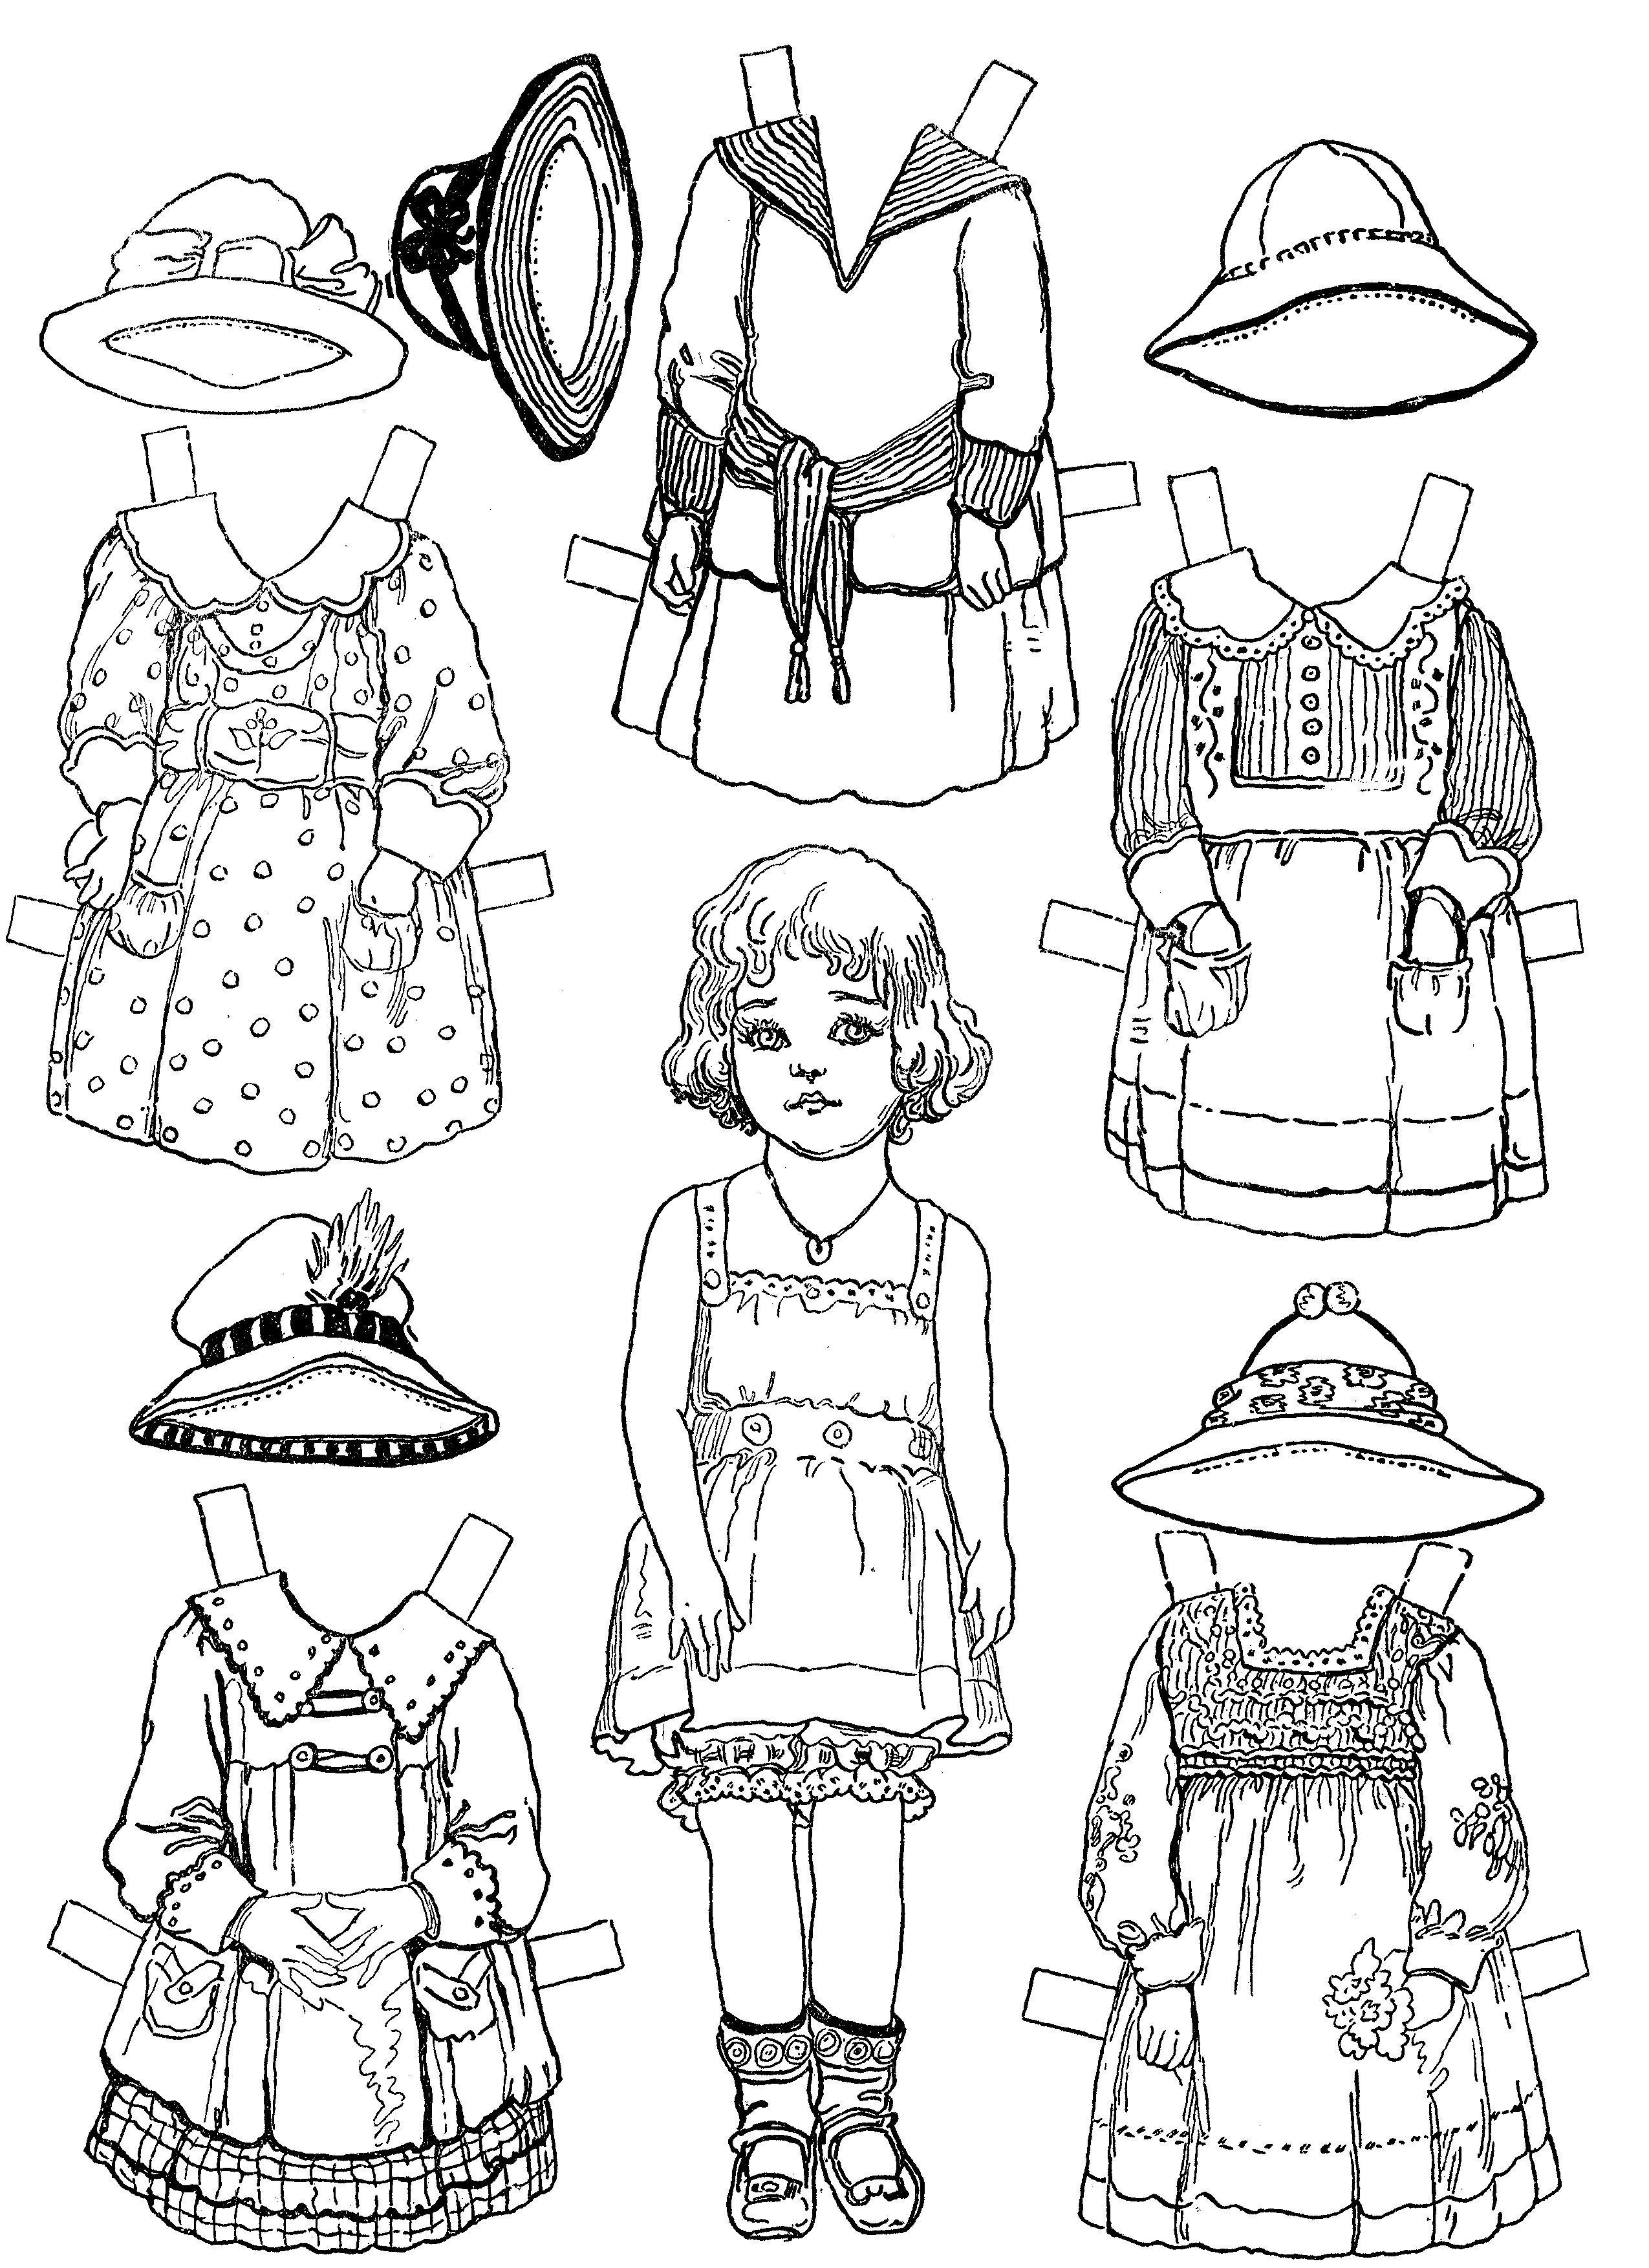 Adult Cute Colonial Coloring Pages Gallery Images top colonial paper dolls free baby ideas printable doll coloring pages gallery images